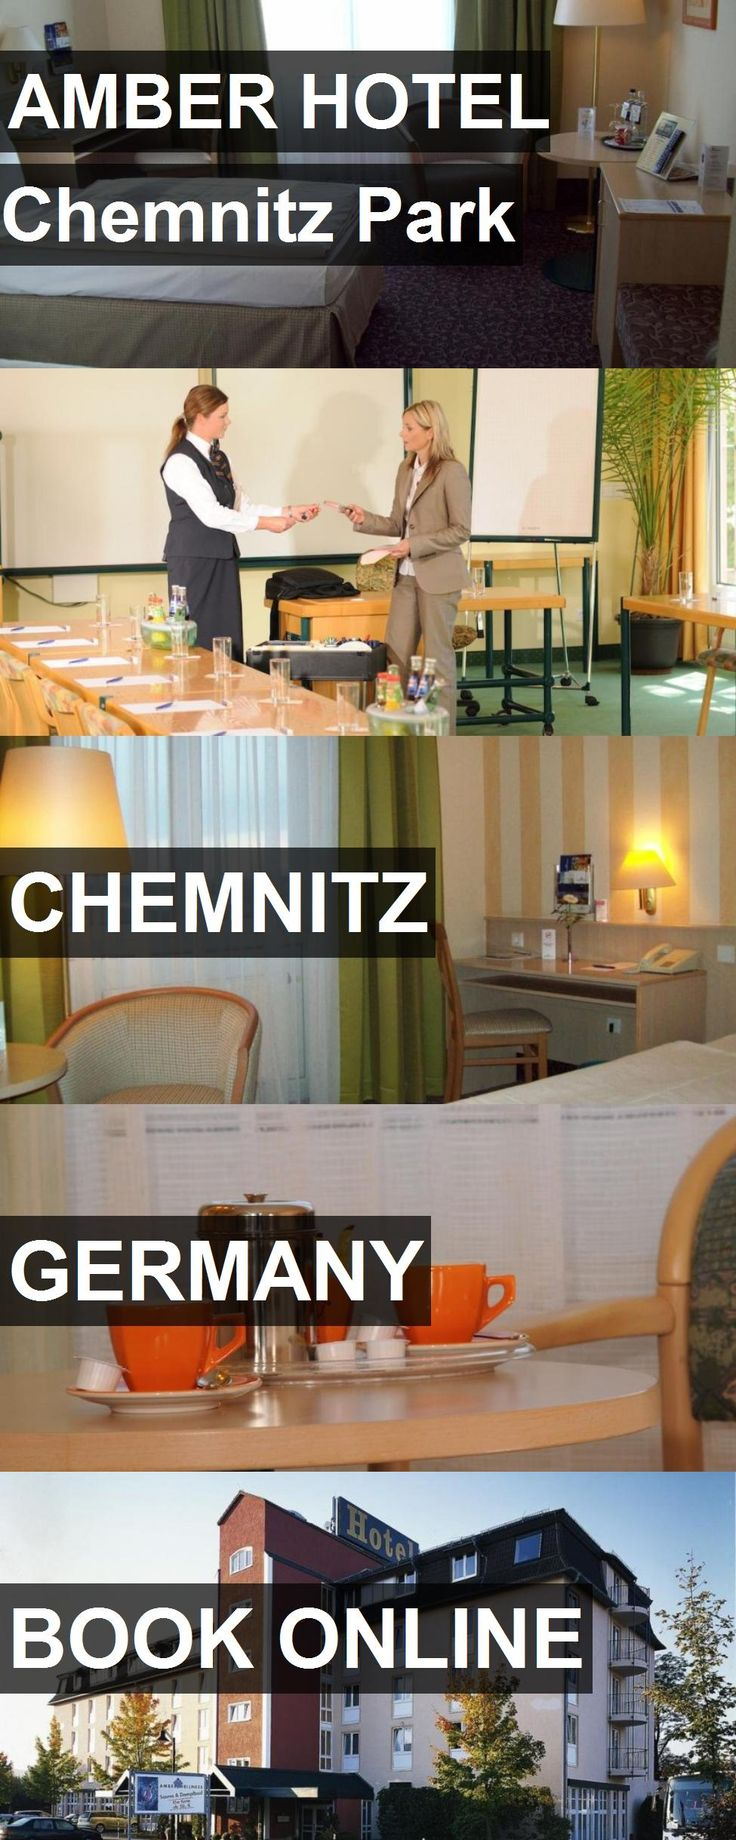 AMBER HOTEL Chemnitz Park in Chemnitz, Germany. For more information, photos, reviews and best prices please follow the link. #Germany #Chemnitz #travel #vacation #hotel